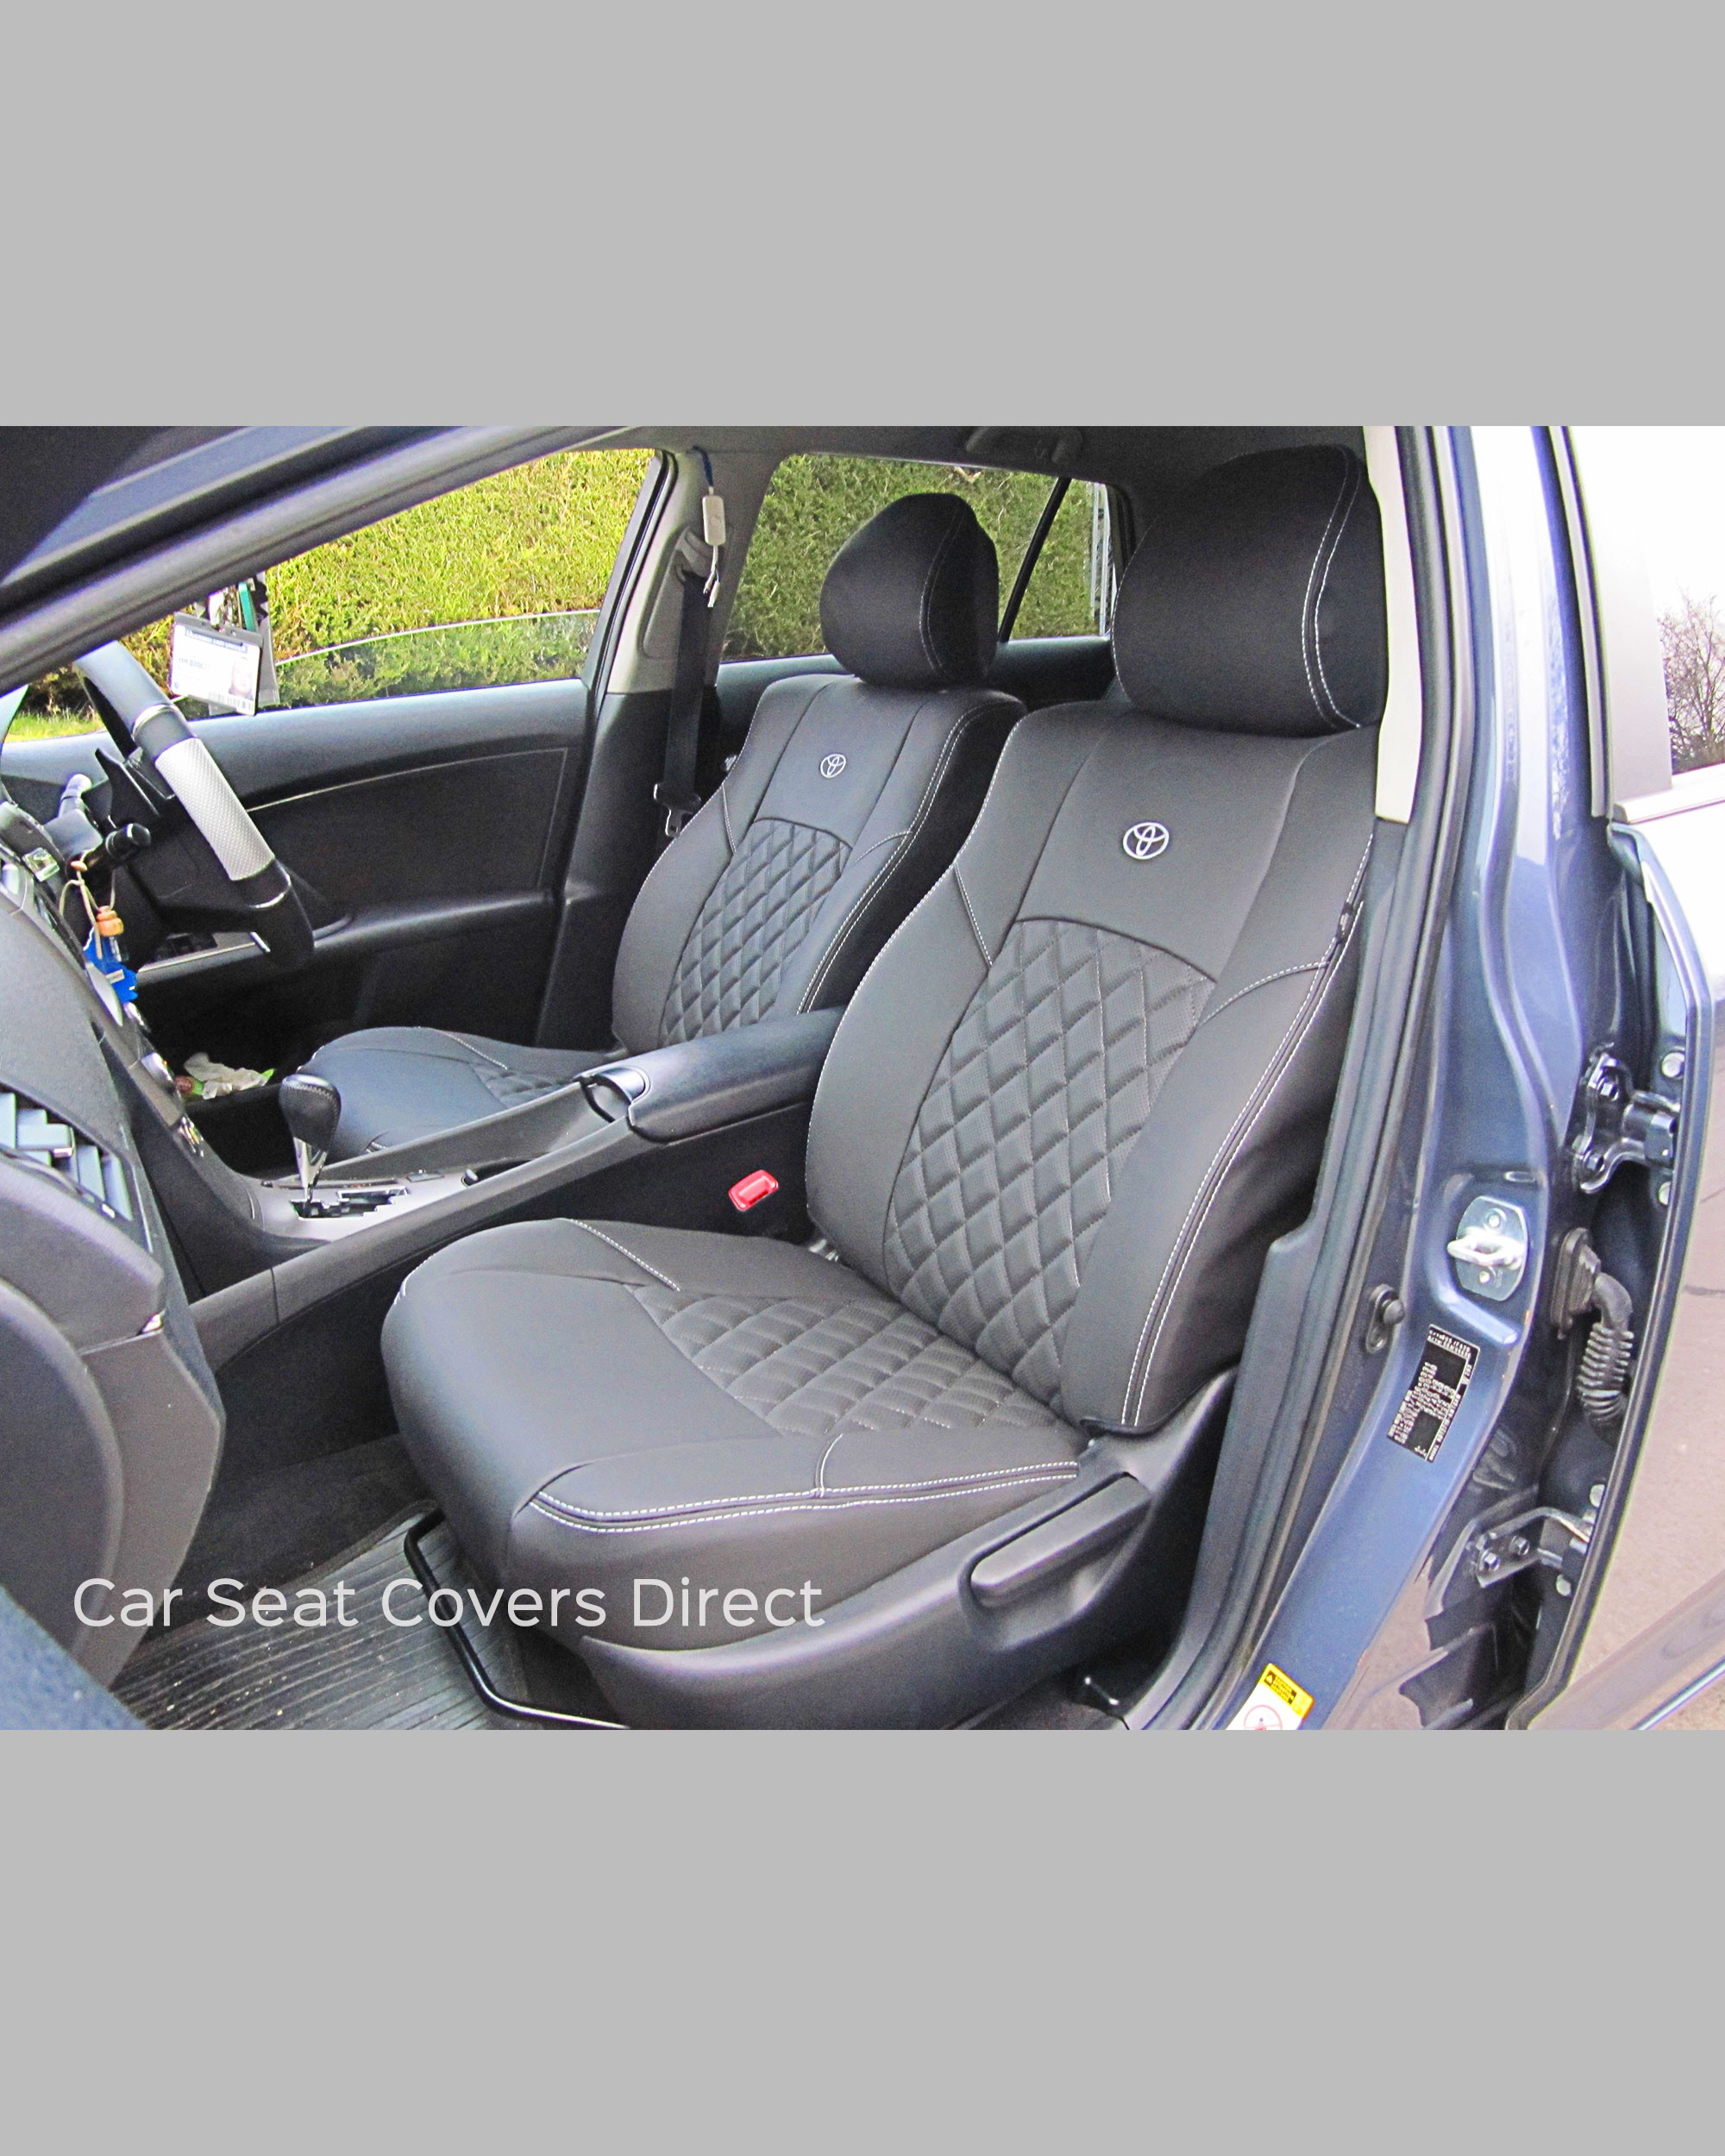 Toyota Avensis seat covers - passenger seat